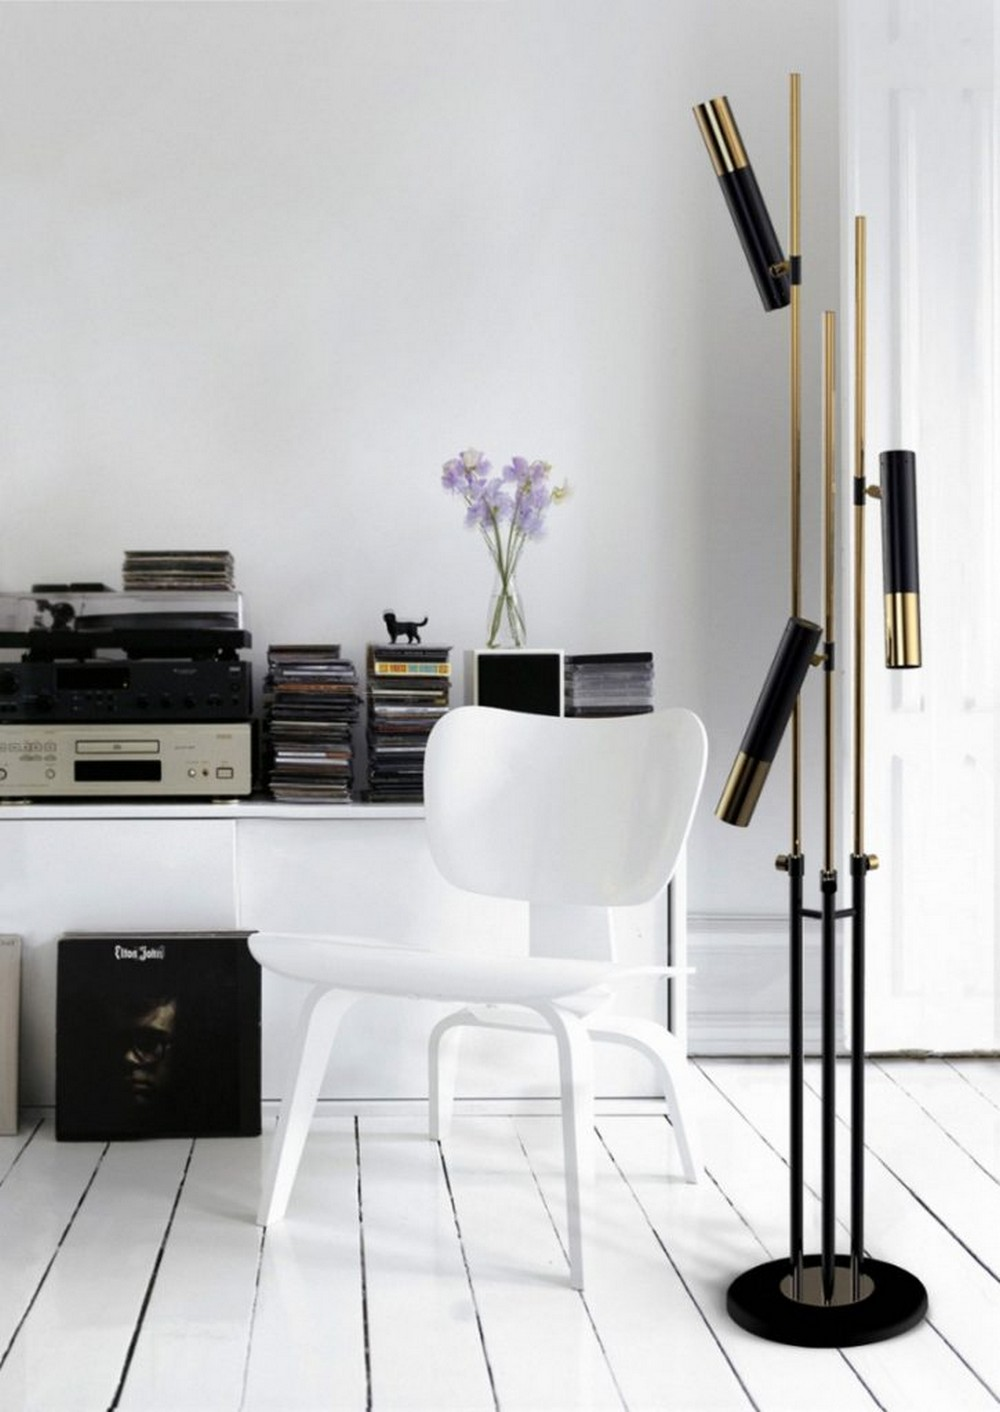 Meet The Perfect Lighting Fixtures For A Minimalistic Design Project Minimalistic Design Project Meet The Perfect Lighting Fixtures For A Minimalistic Design Project Meet The Perfect Lighting Fixtures For A Minimalistic Design Project 5